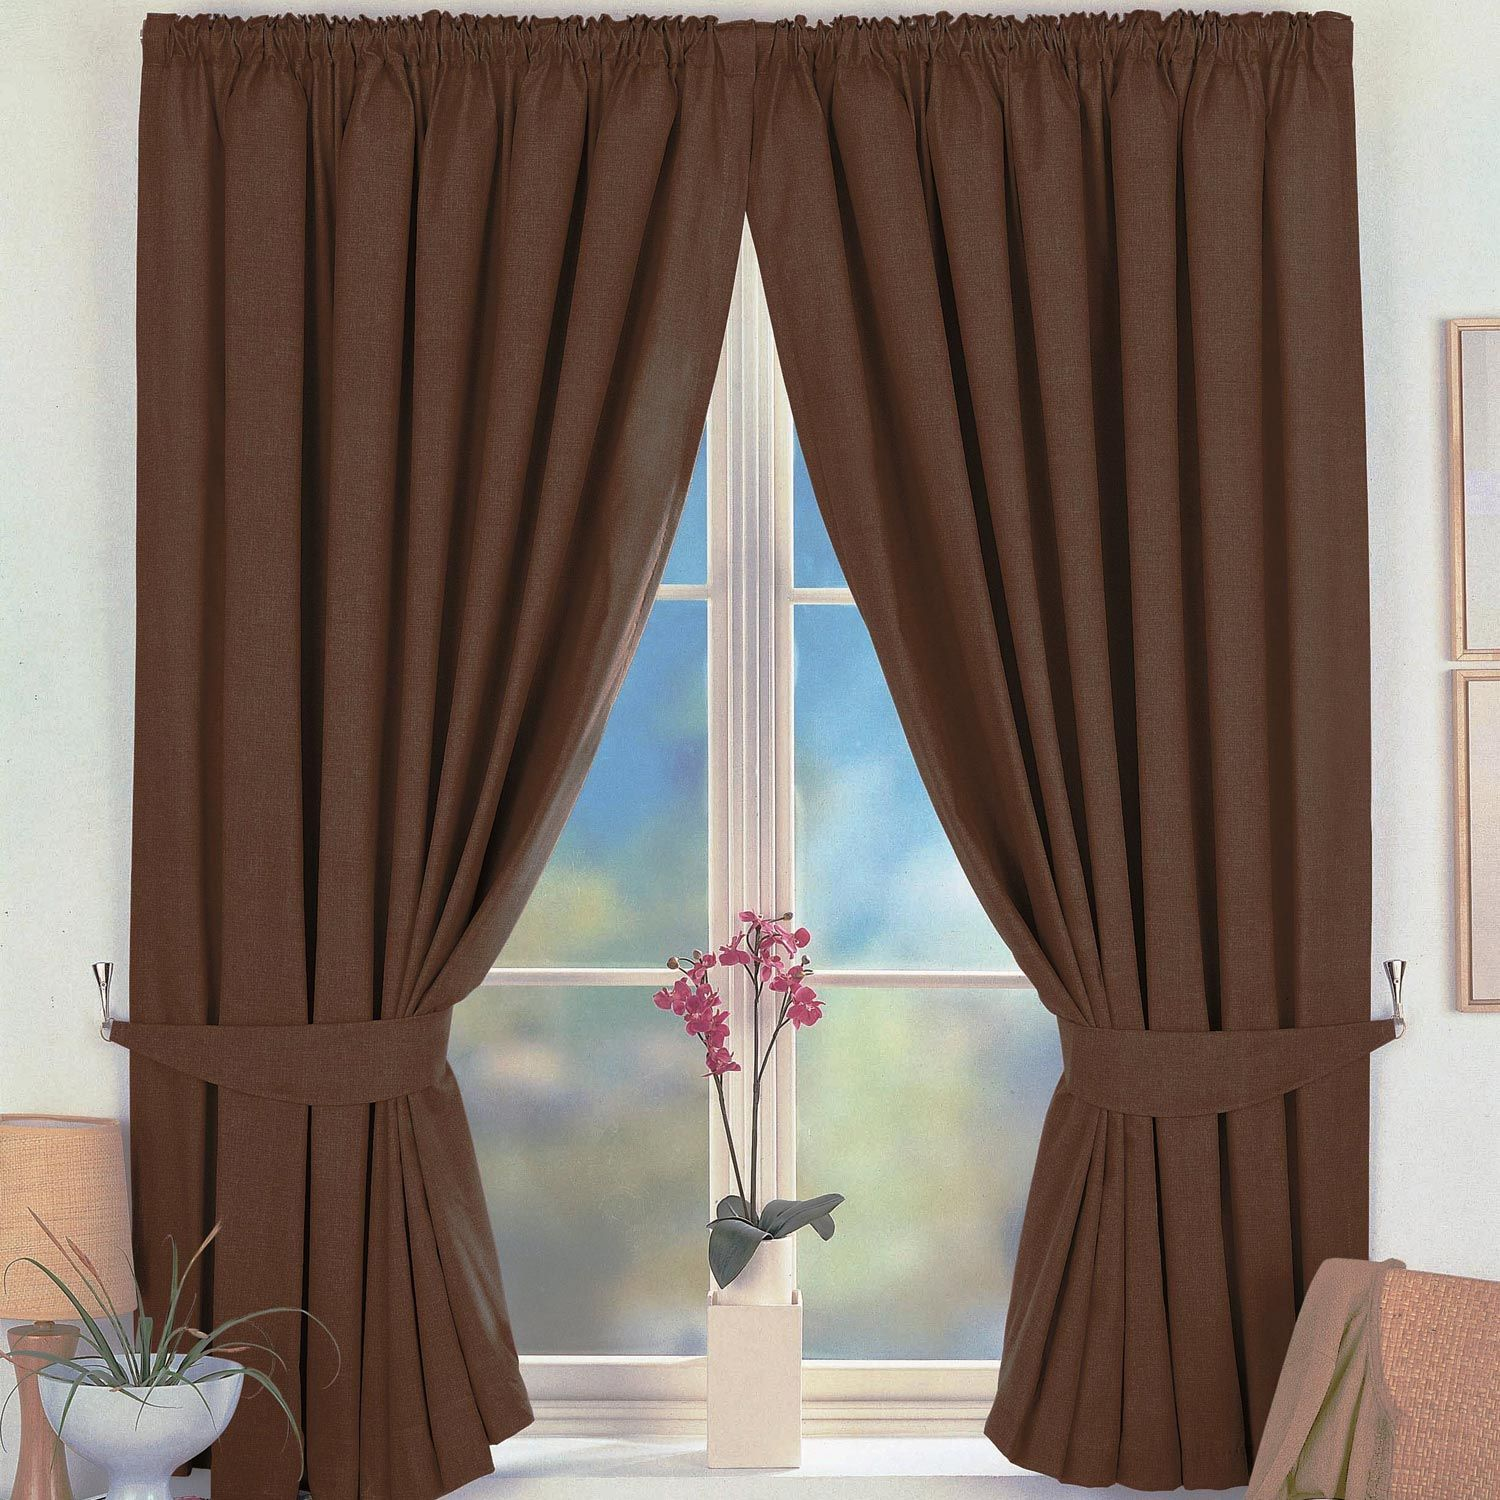 2015 Creative Curtains Patterns Pics